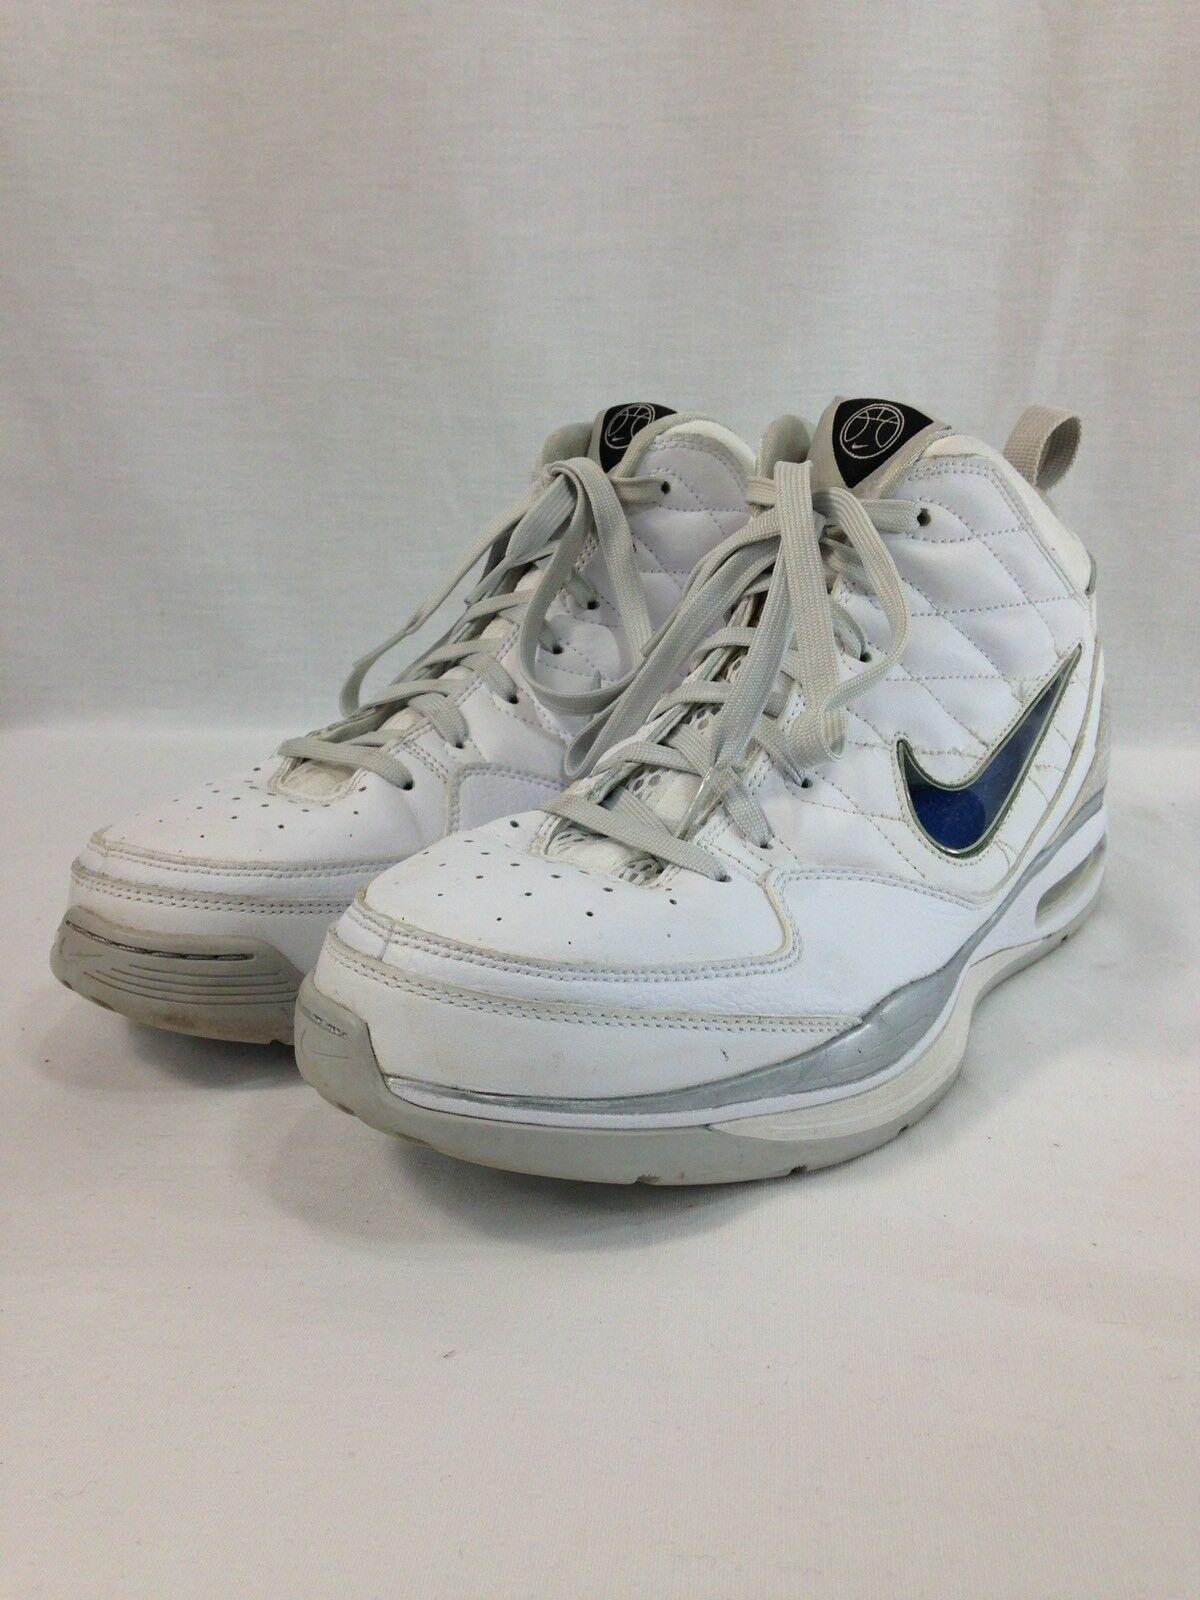 Nike Air Dream Basketball Sneakers shoes Mens 11.5 White 367195-102 High Top